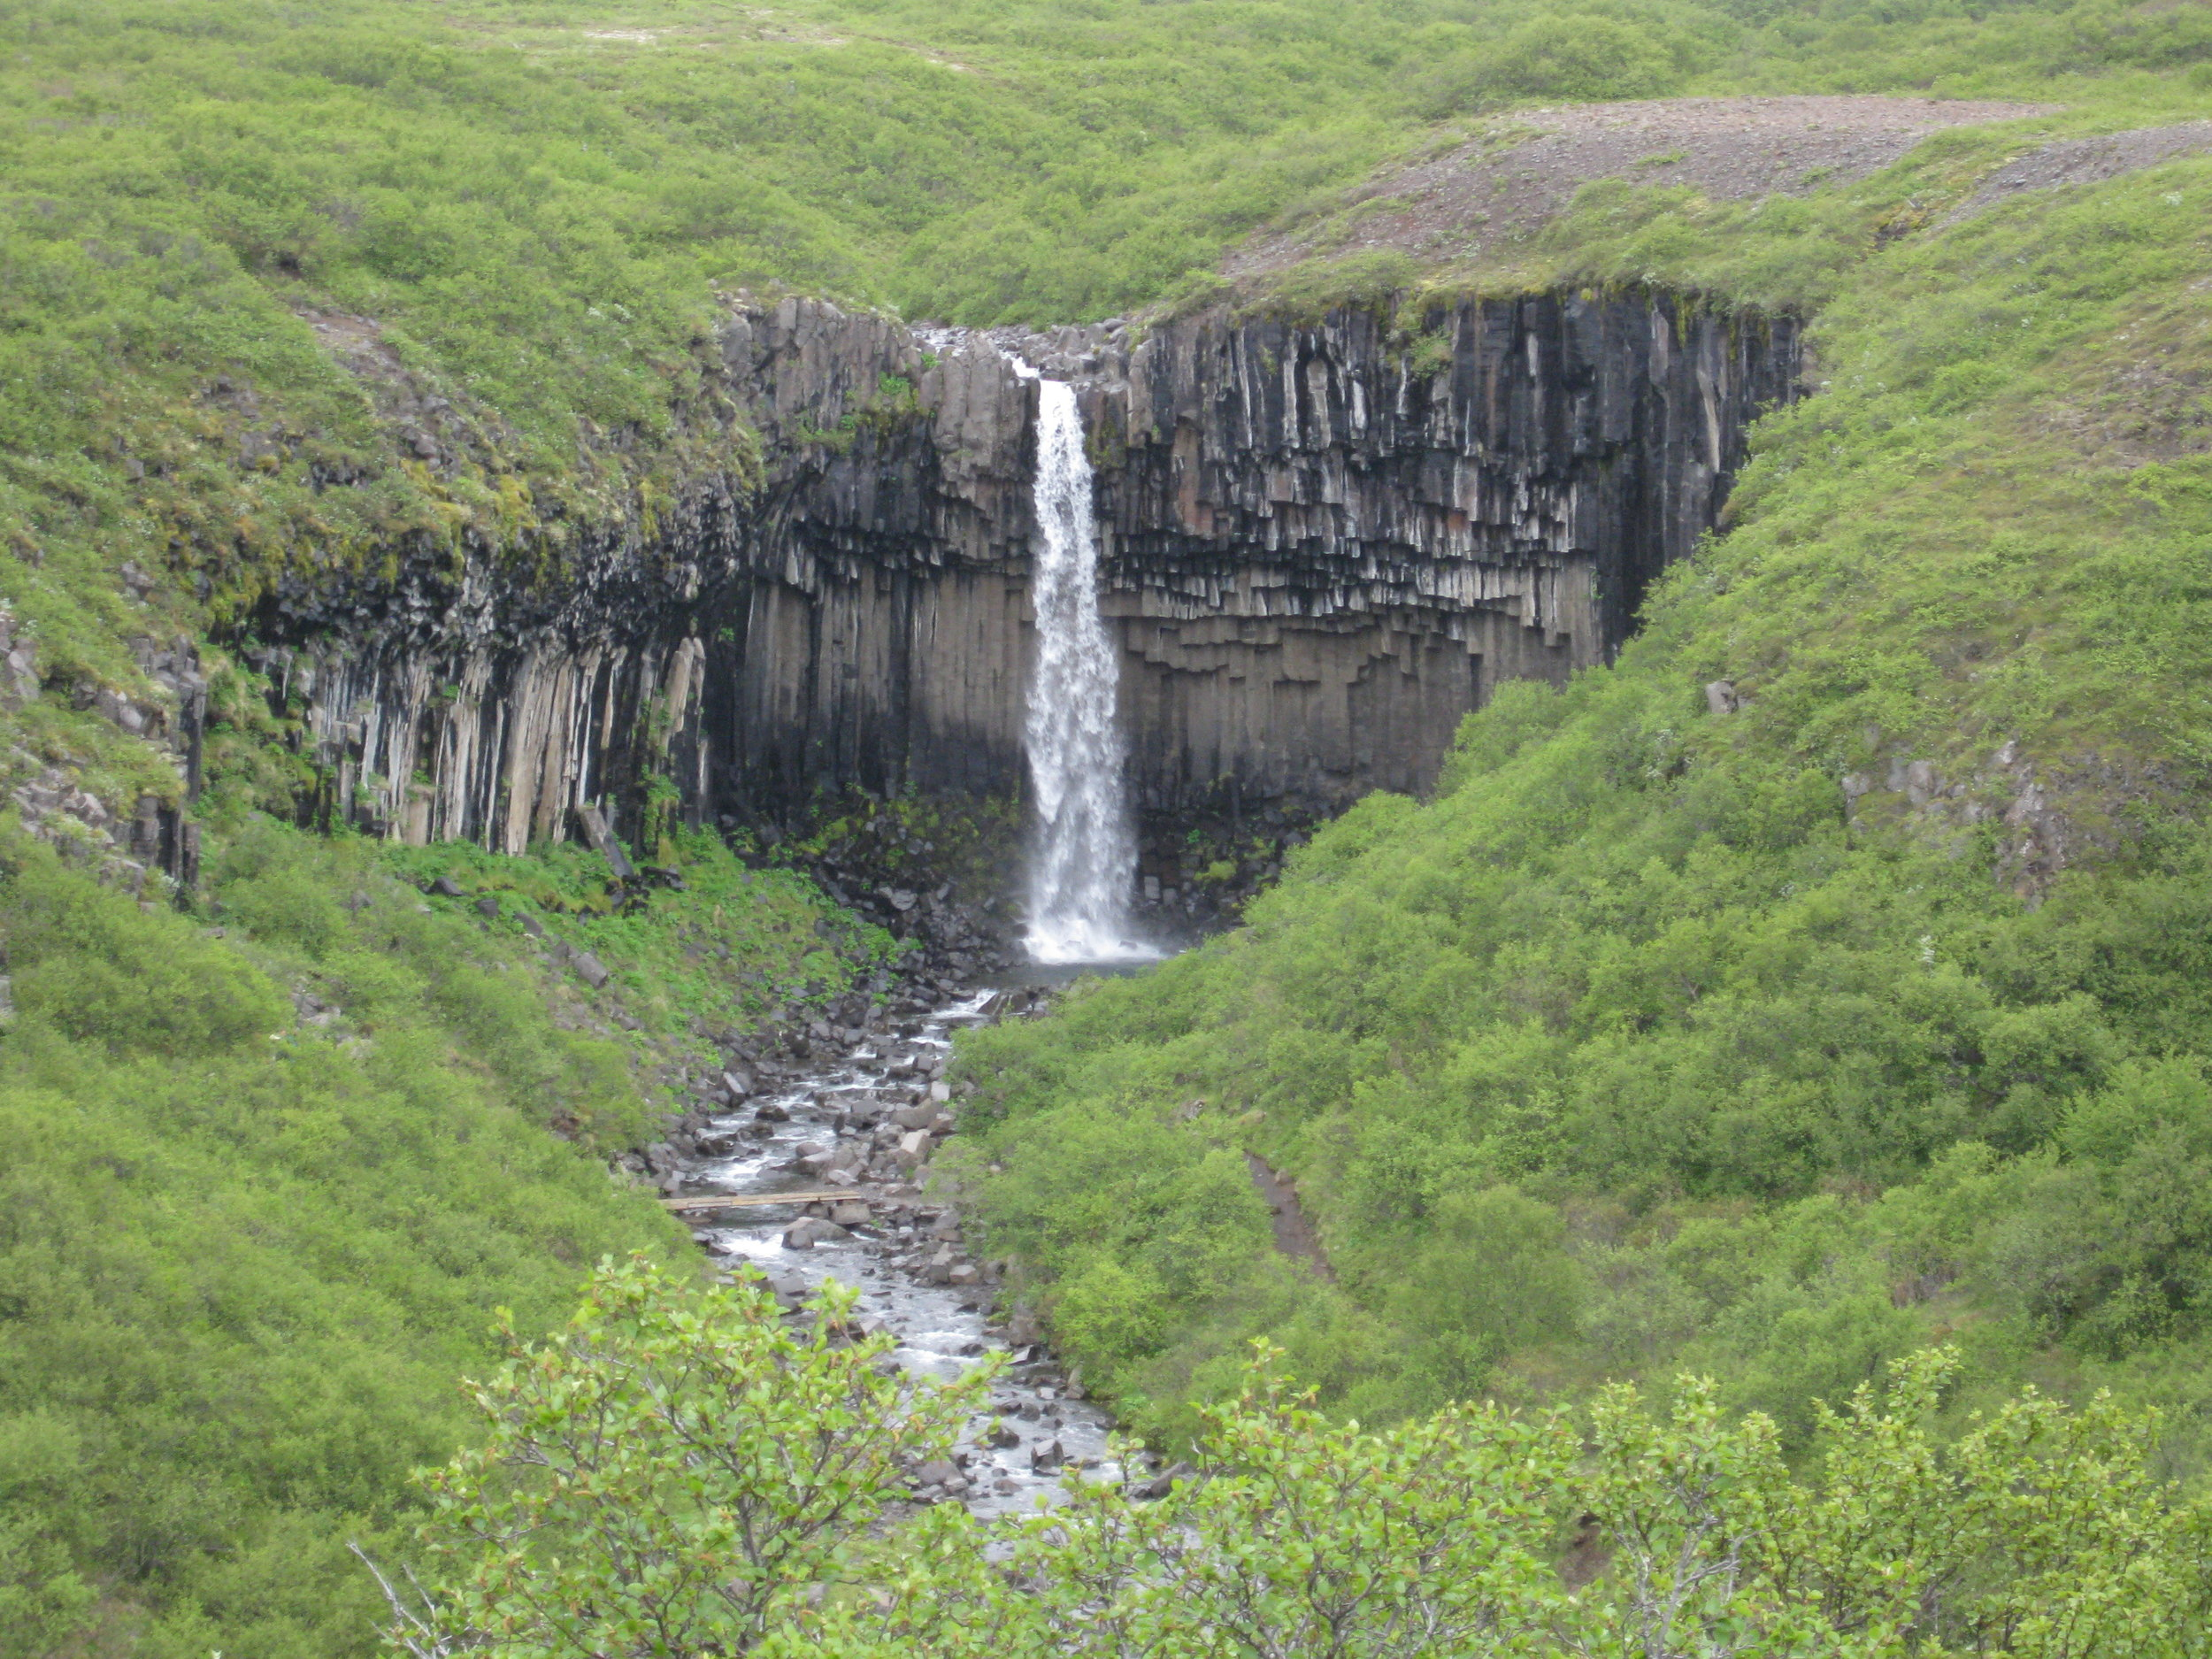 The Svartifoss waterfall spills over columnar basalt in Vatnajokull National Park.